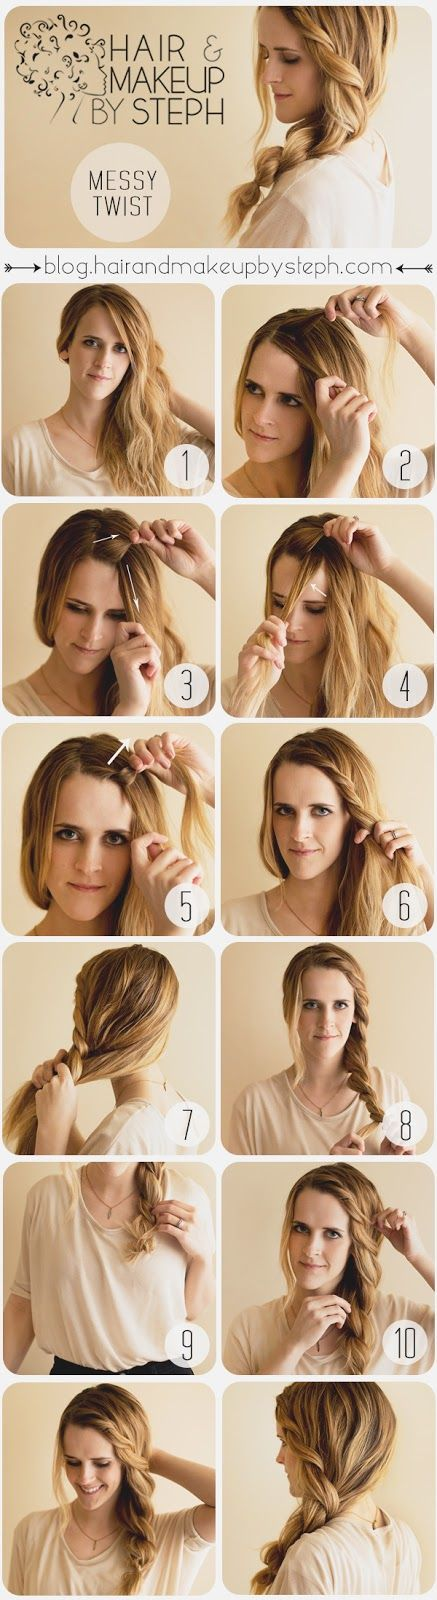 Top Pinner @Stephanie Close Brinkerhoff shows the Messy Twist HOW TO #Sephora #tresscode #hairstyles #hairtutorial